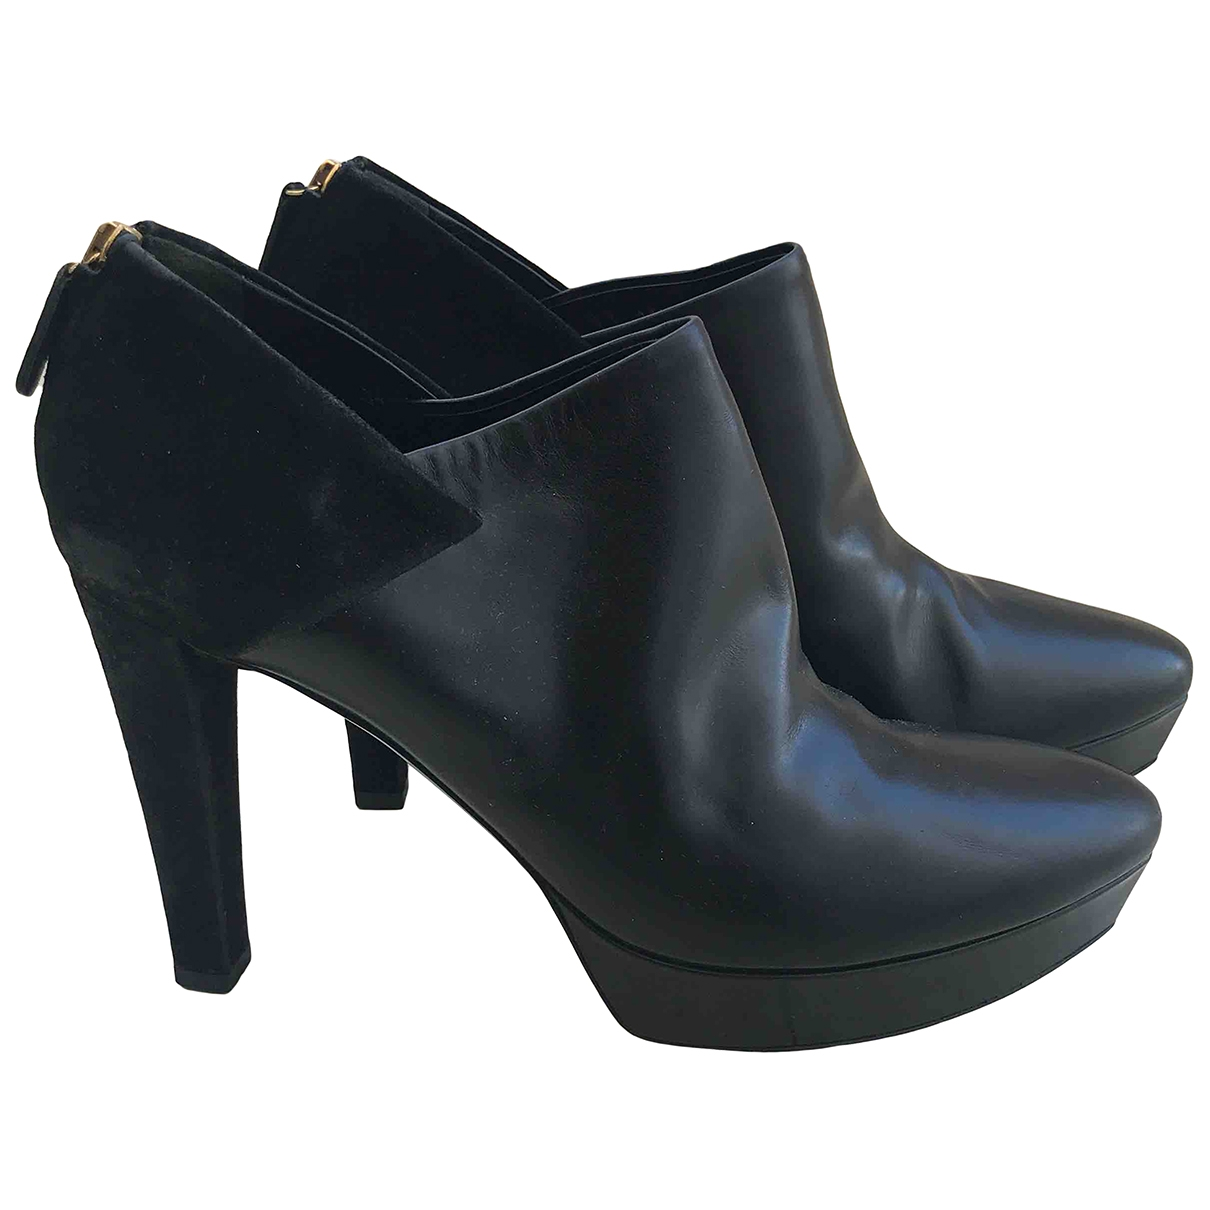 Gucci \N Black Leather Ankle boots for Women 39.5 EU